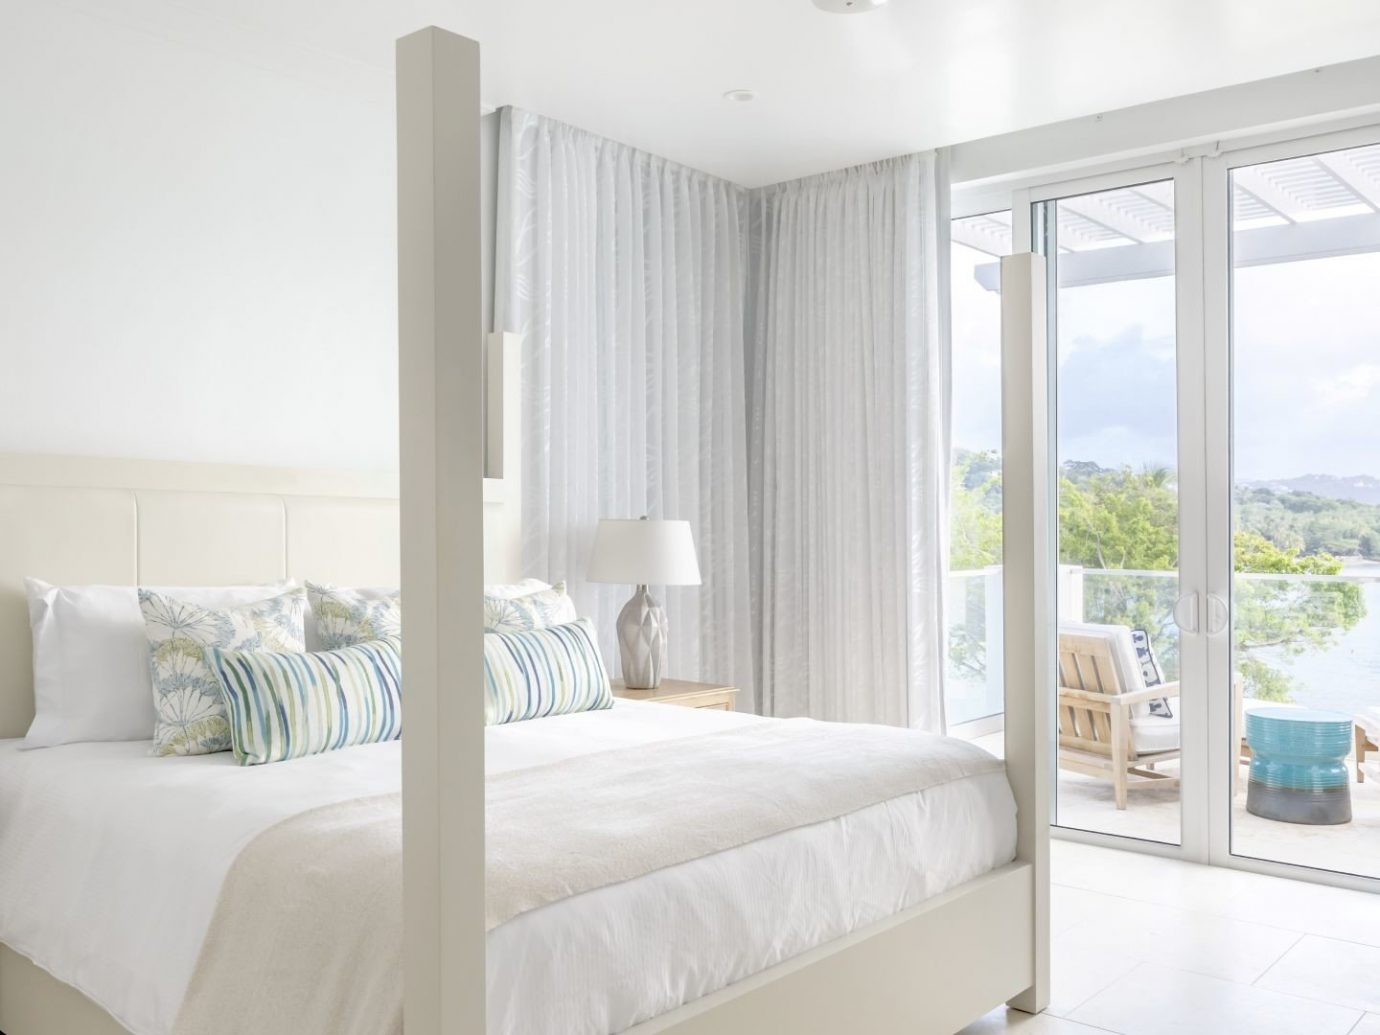 All-Inclusive Resorts Budget caribbean Hotels indoor wall bed window room property bed frame Bedroom interior design home window covering window treatment curtain real estate Suite estate ceiling floor mattress bed sheet furniture bedding interior designer window blind hotel product